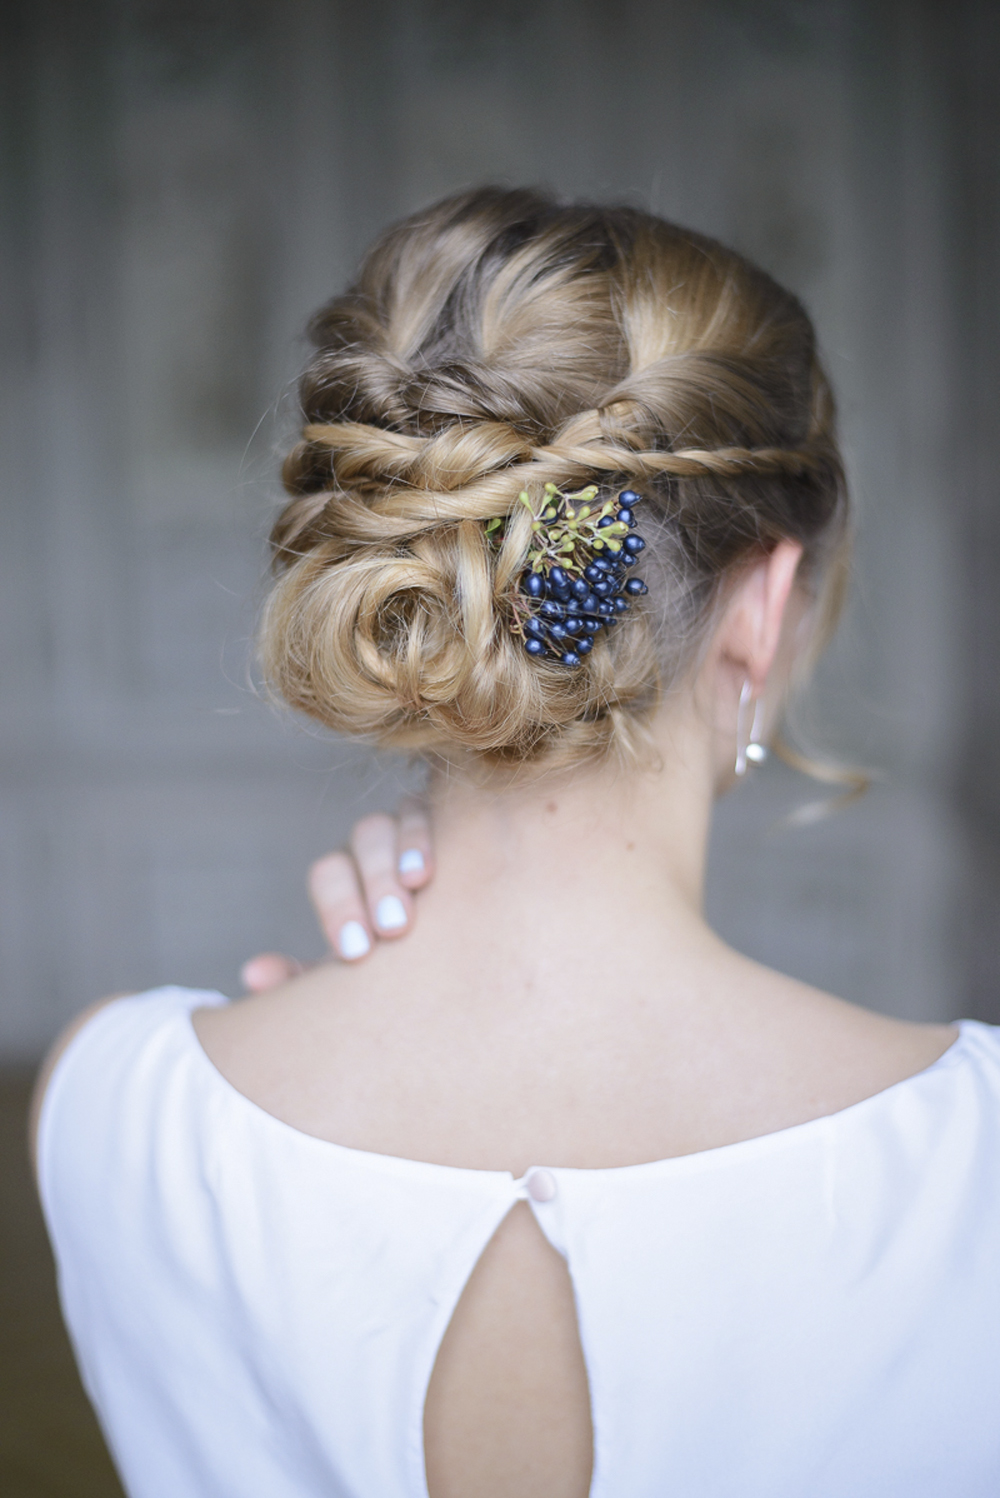 Bridal hairstyle braids up-do with blue berries at Schloss Laudon Vienna Austria by Barbara Wenz Photography